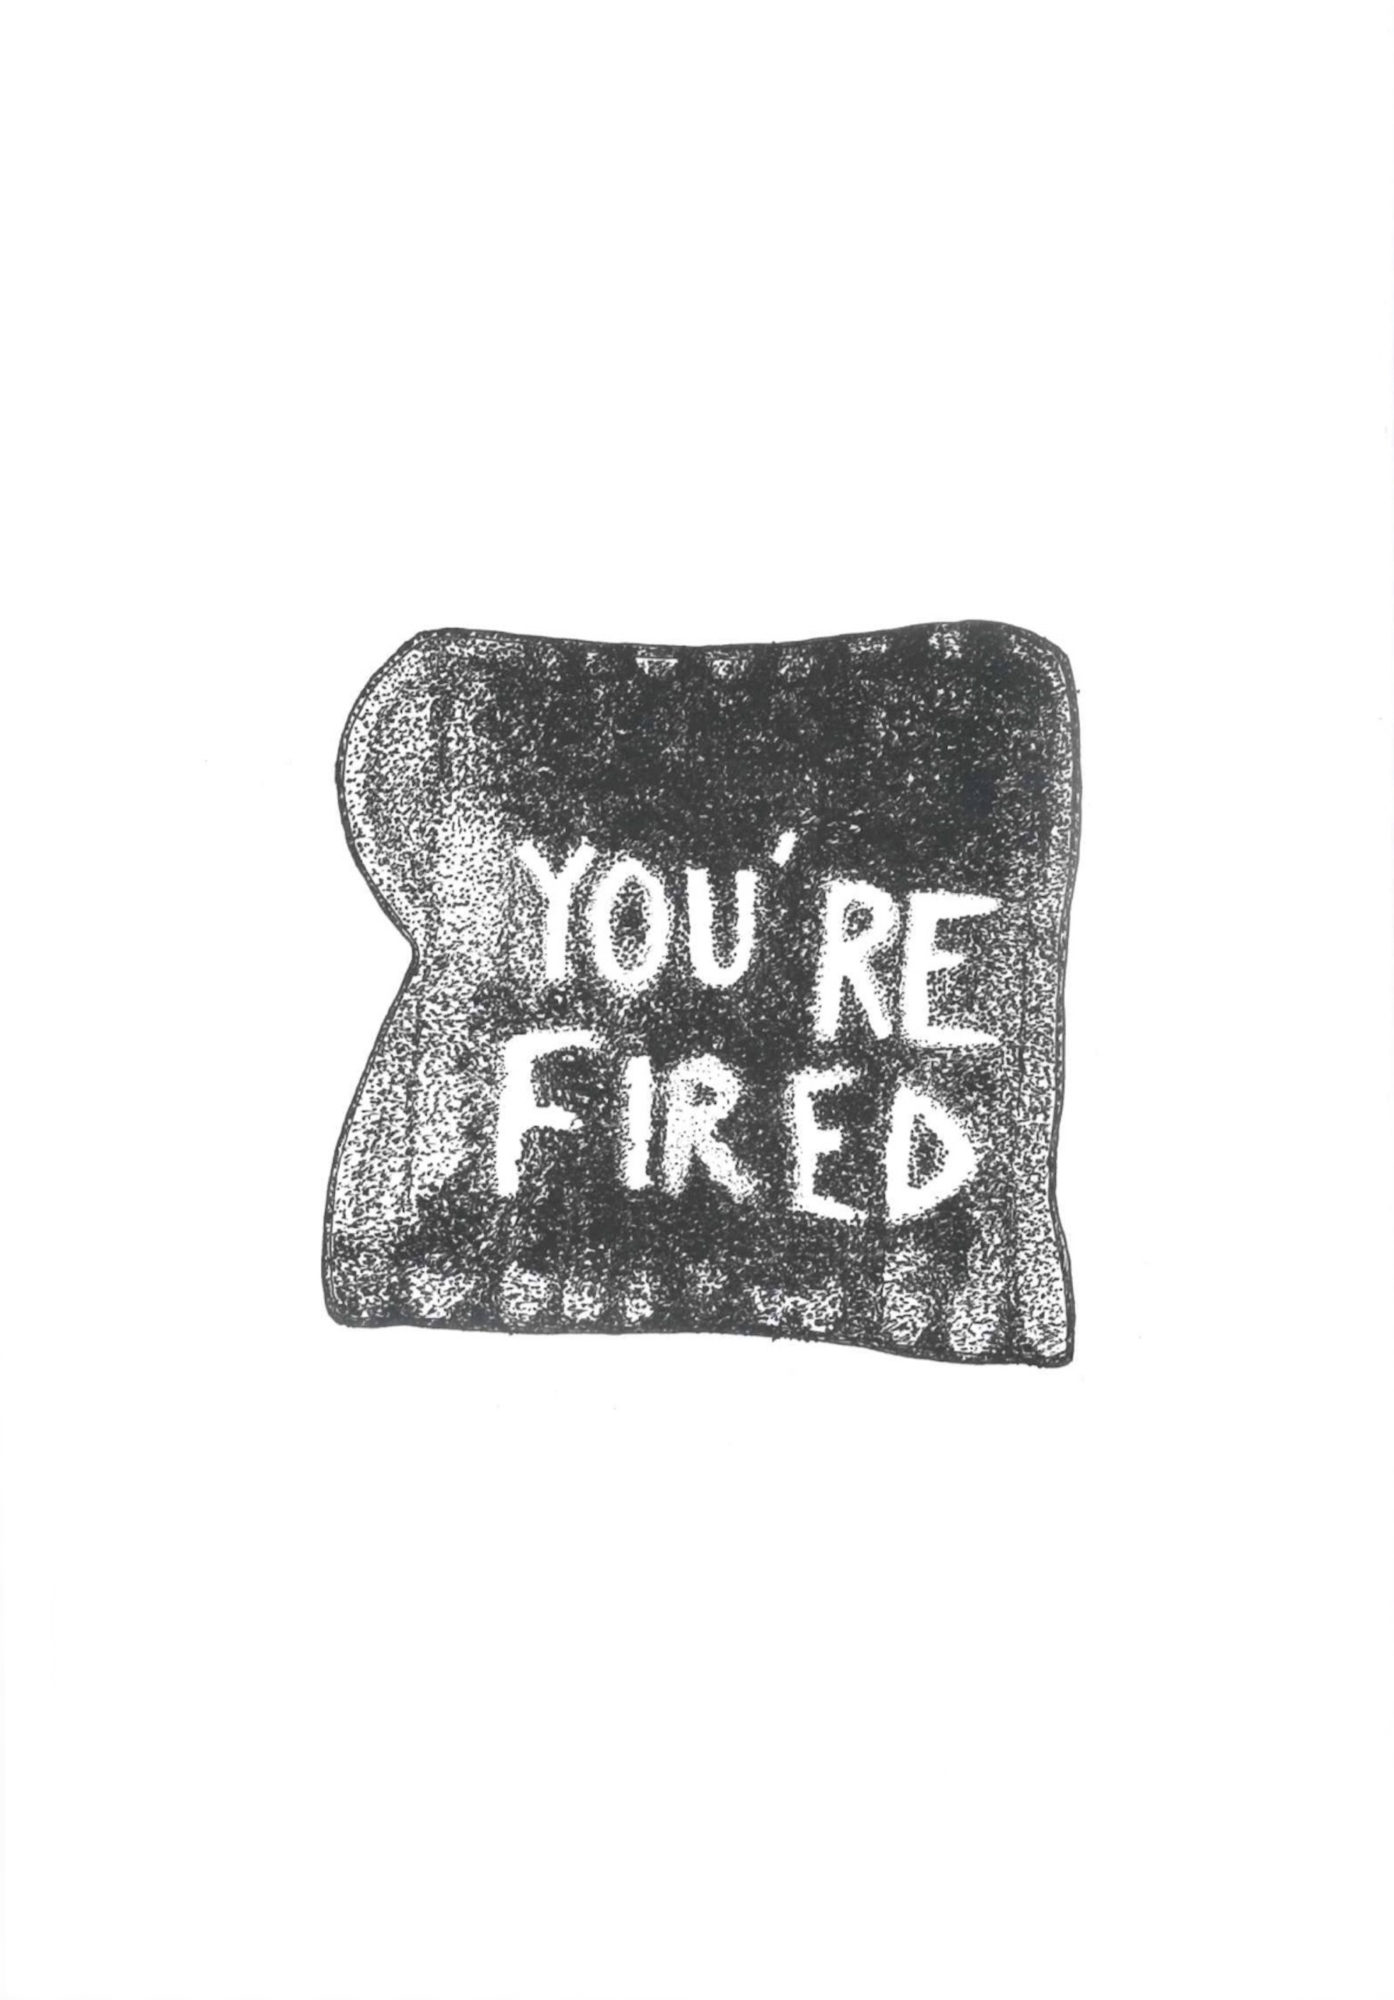 You're fired - Galerie Georges-Philippe & Nathalie Vallois